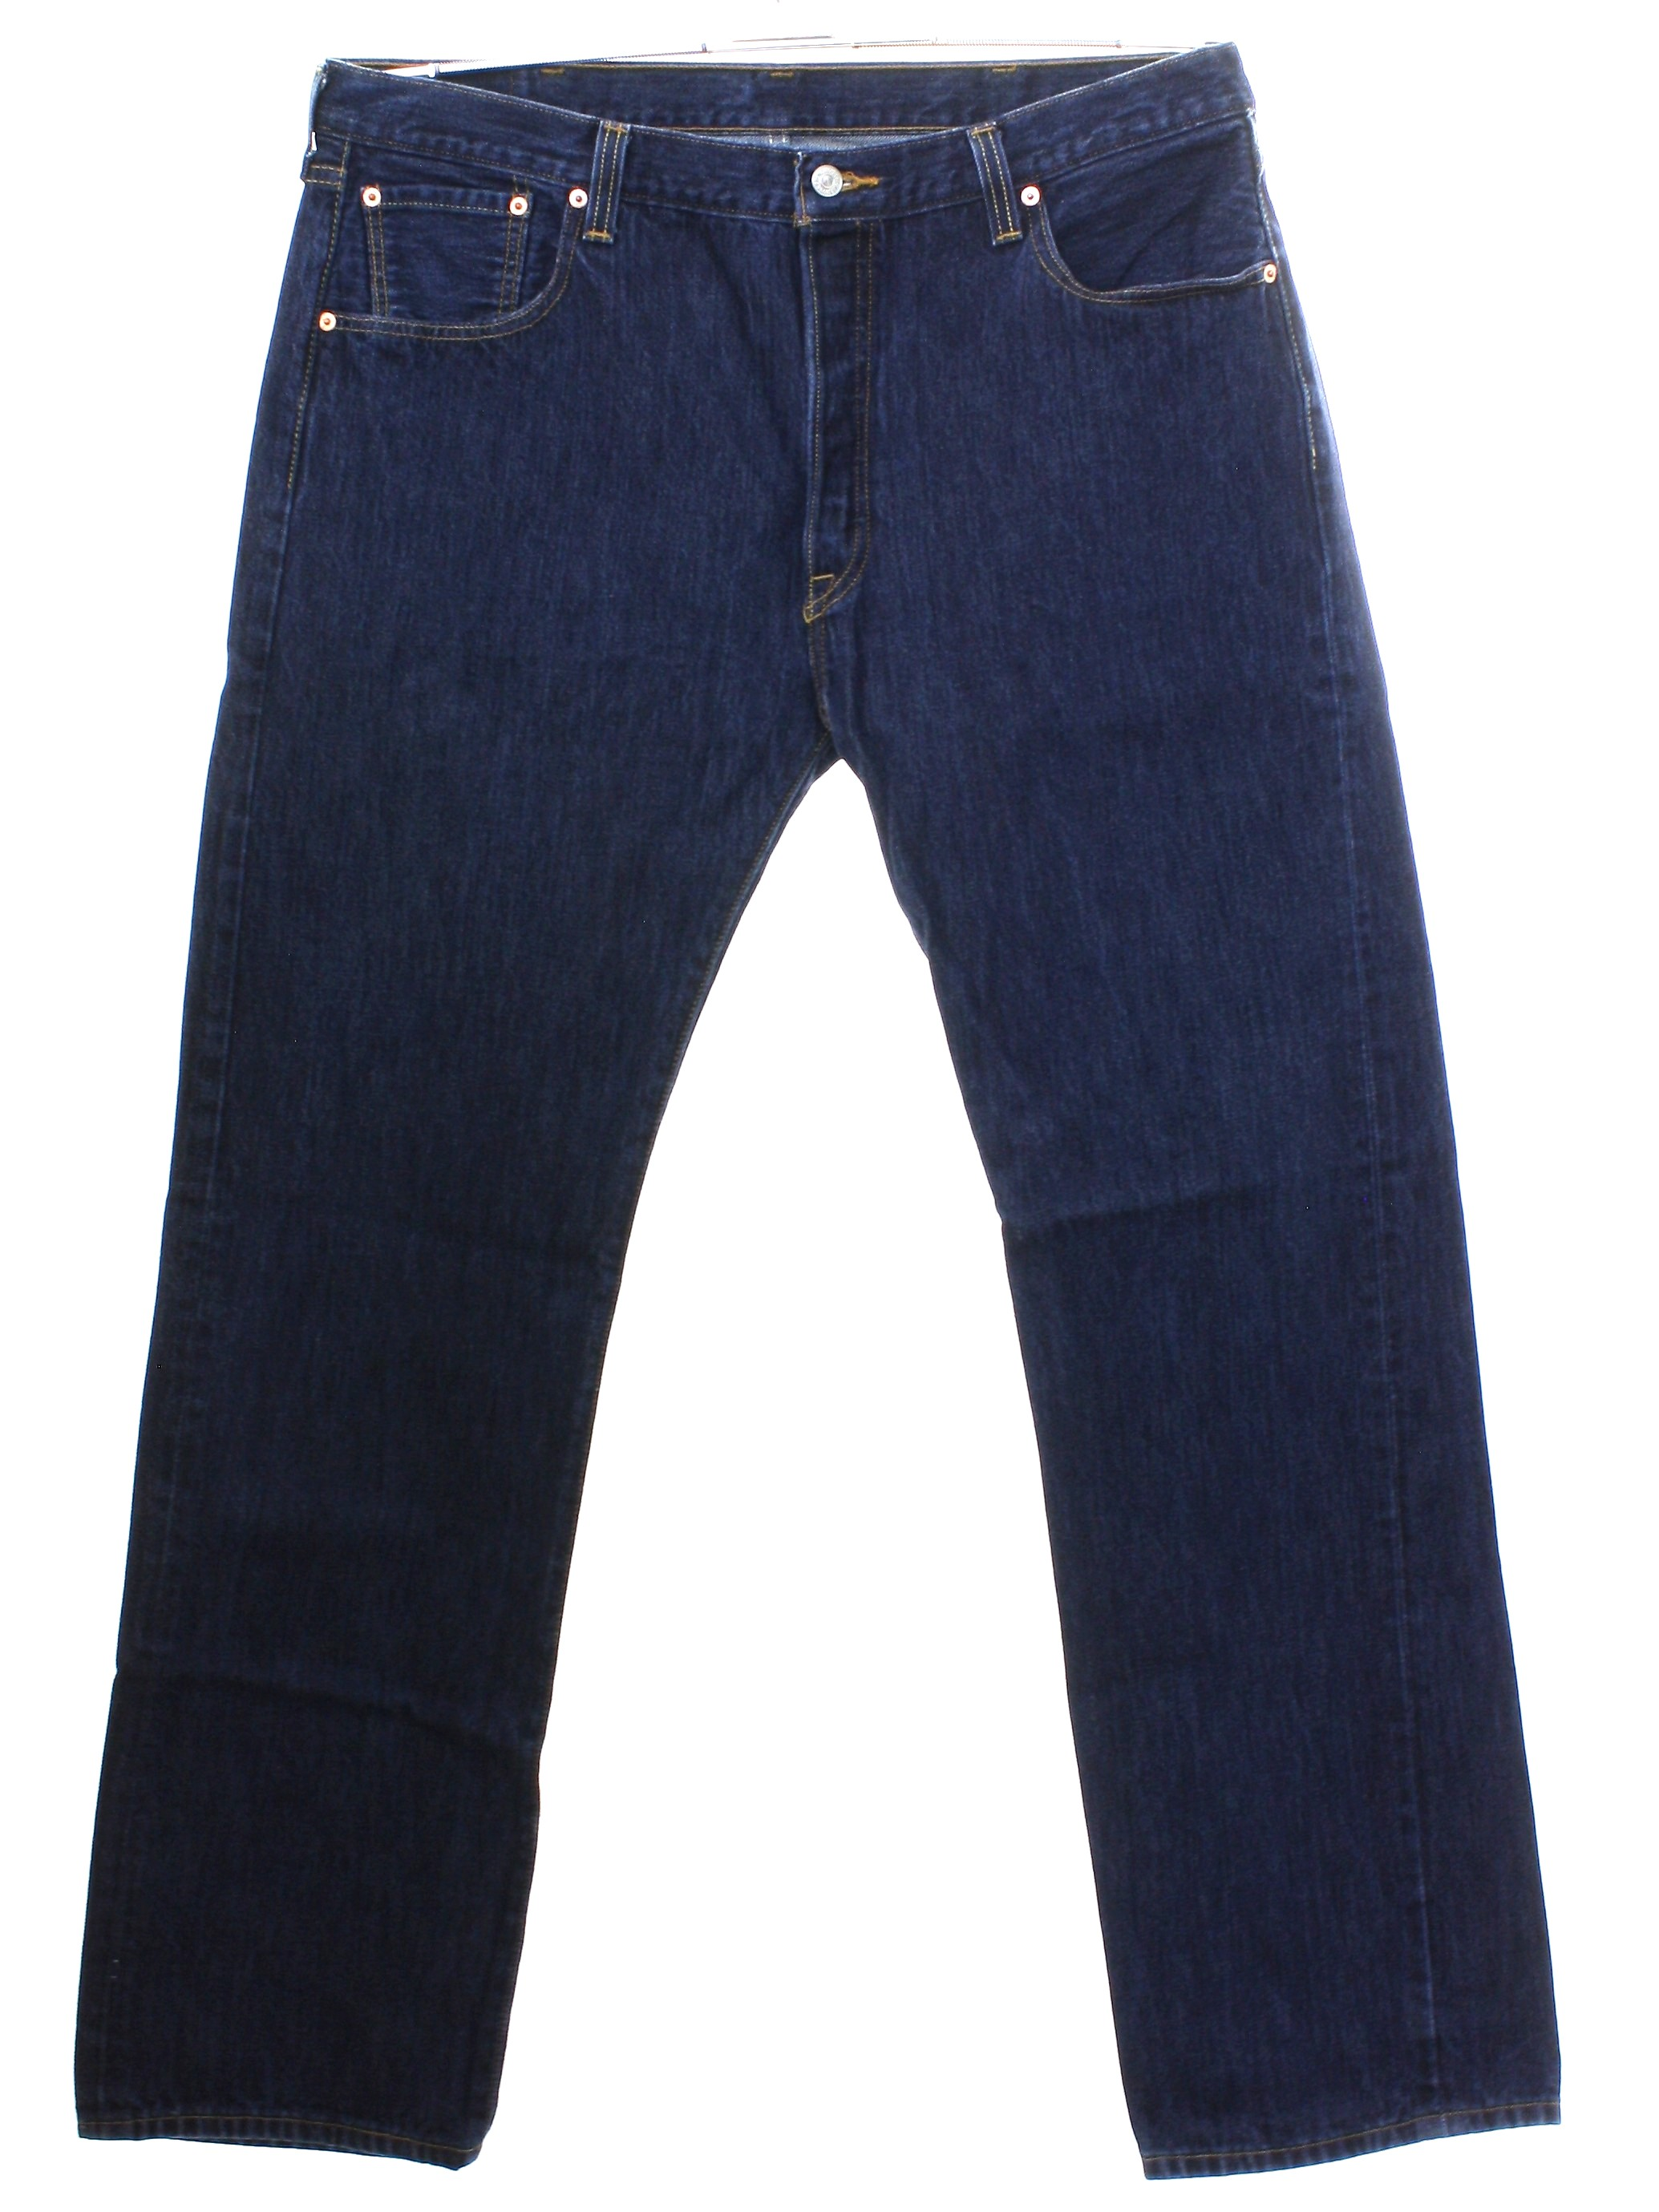 f4464ec9 1990's Retro Pants: 90s or newer -Levis- 501- Mens slightly worn ...